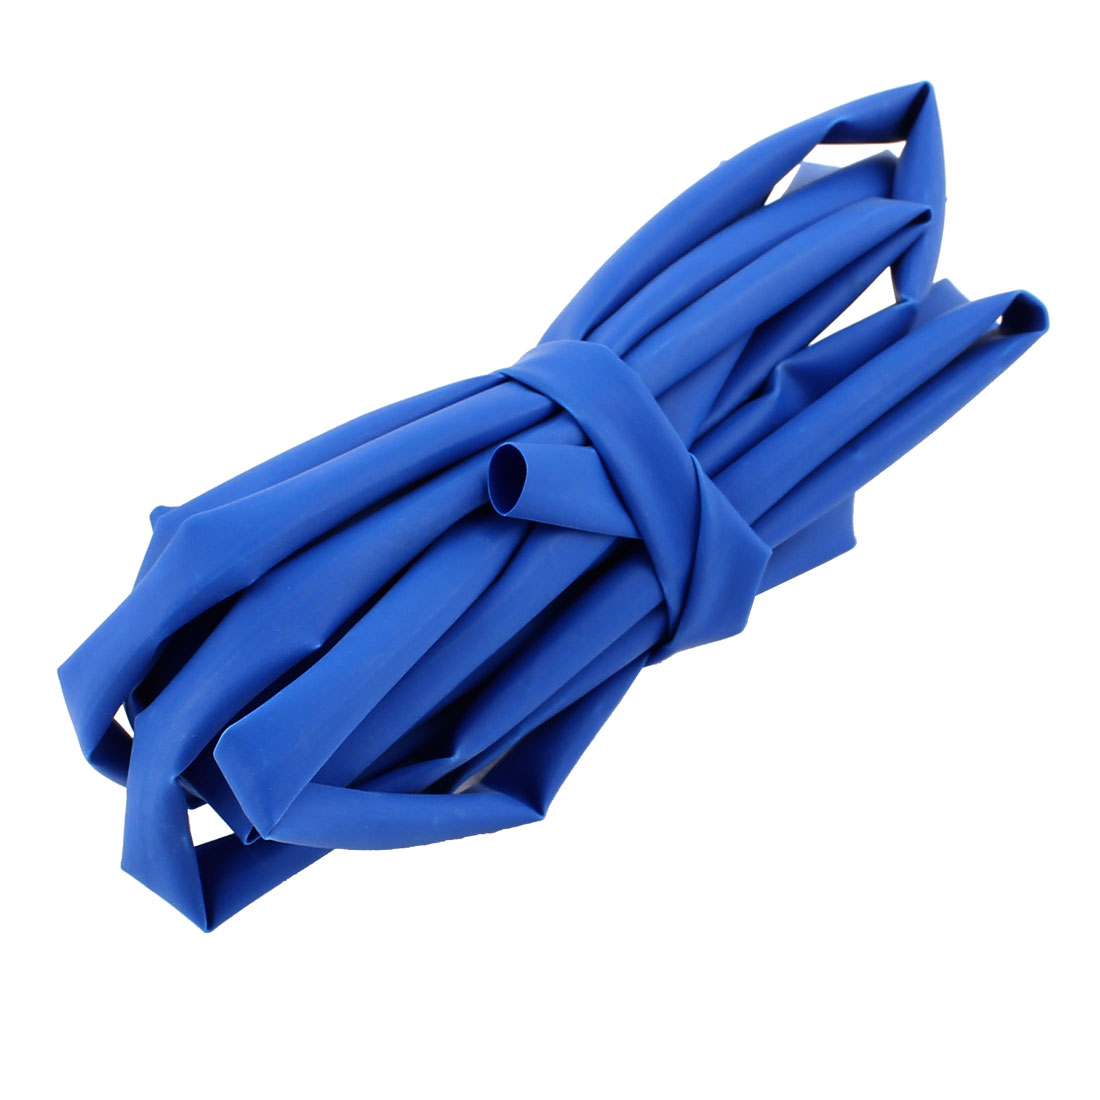 2.5M Length 6mm Dia Polyolefin Heat Shrinkable Tube Sleeving Blue